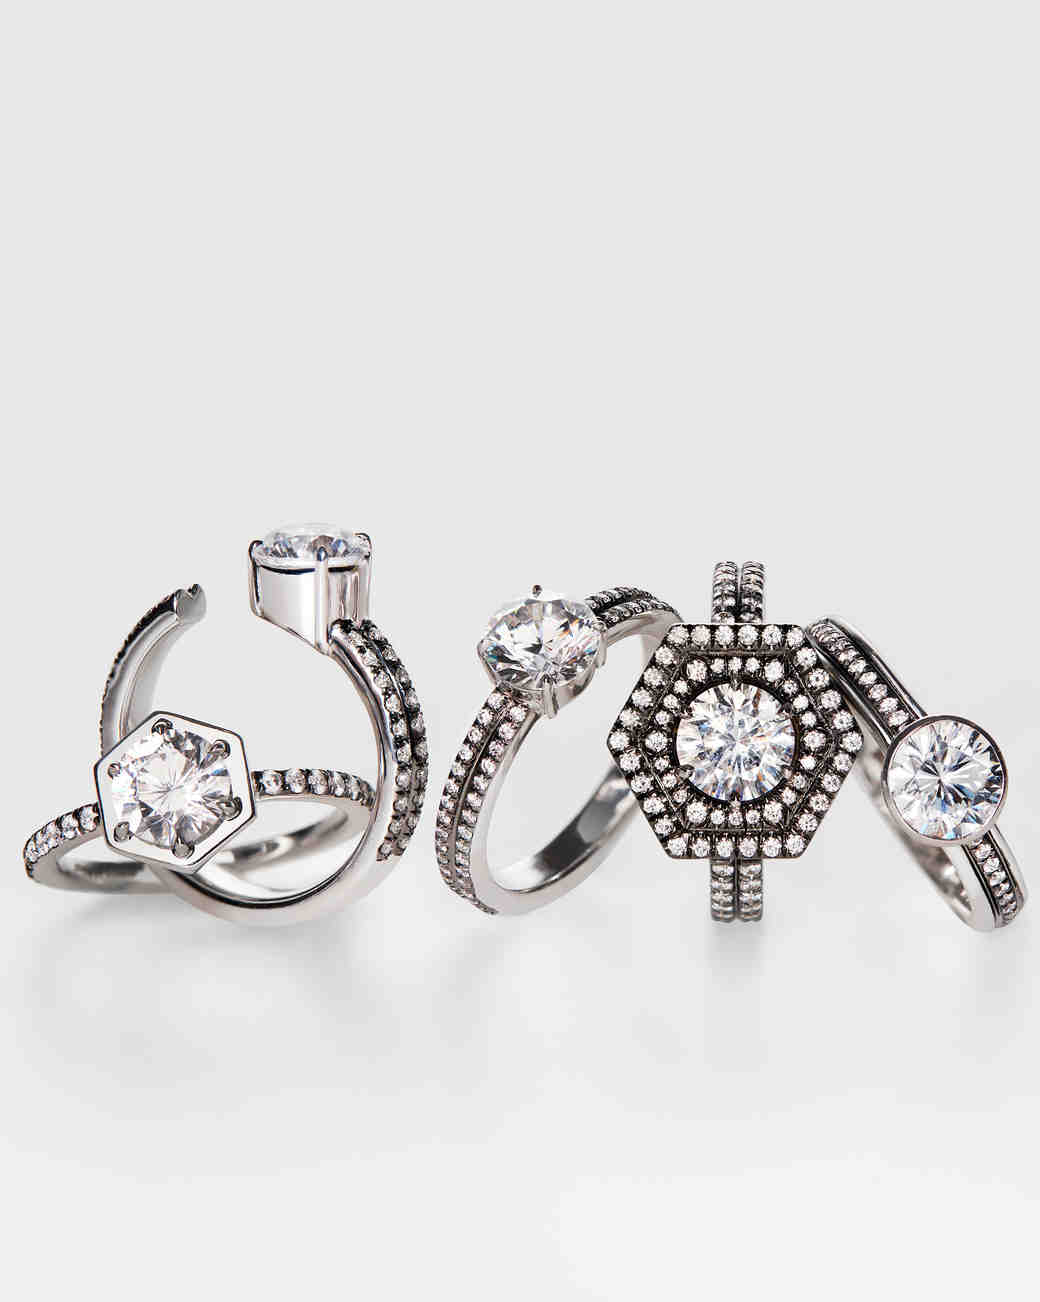 Modern Engagement Rings from Jemma Wynne x Stone & Strand